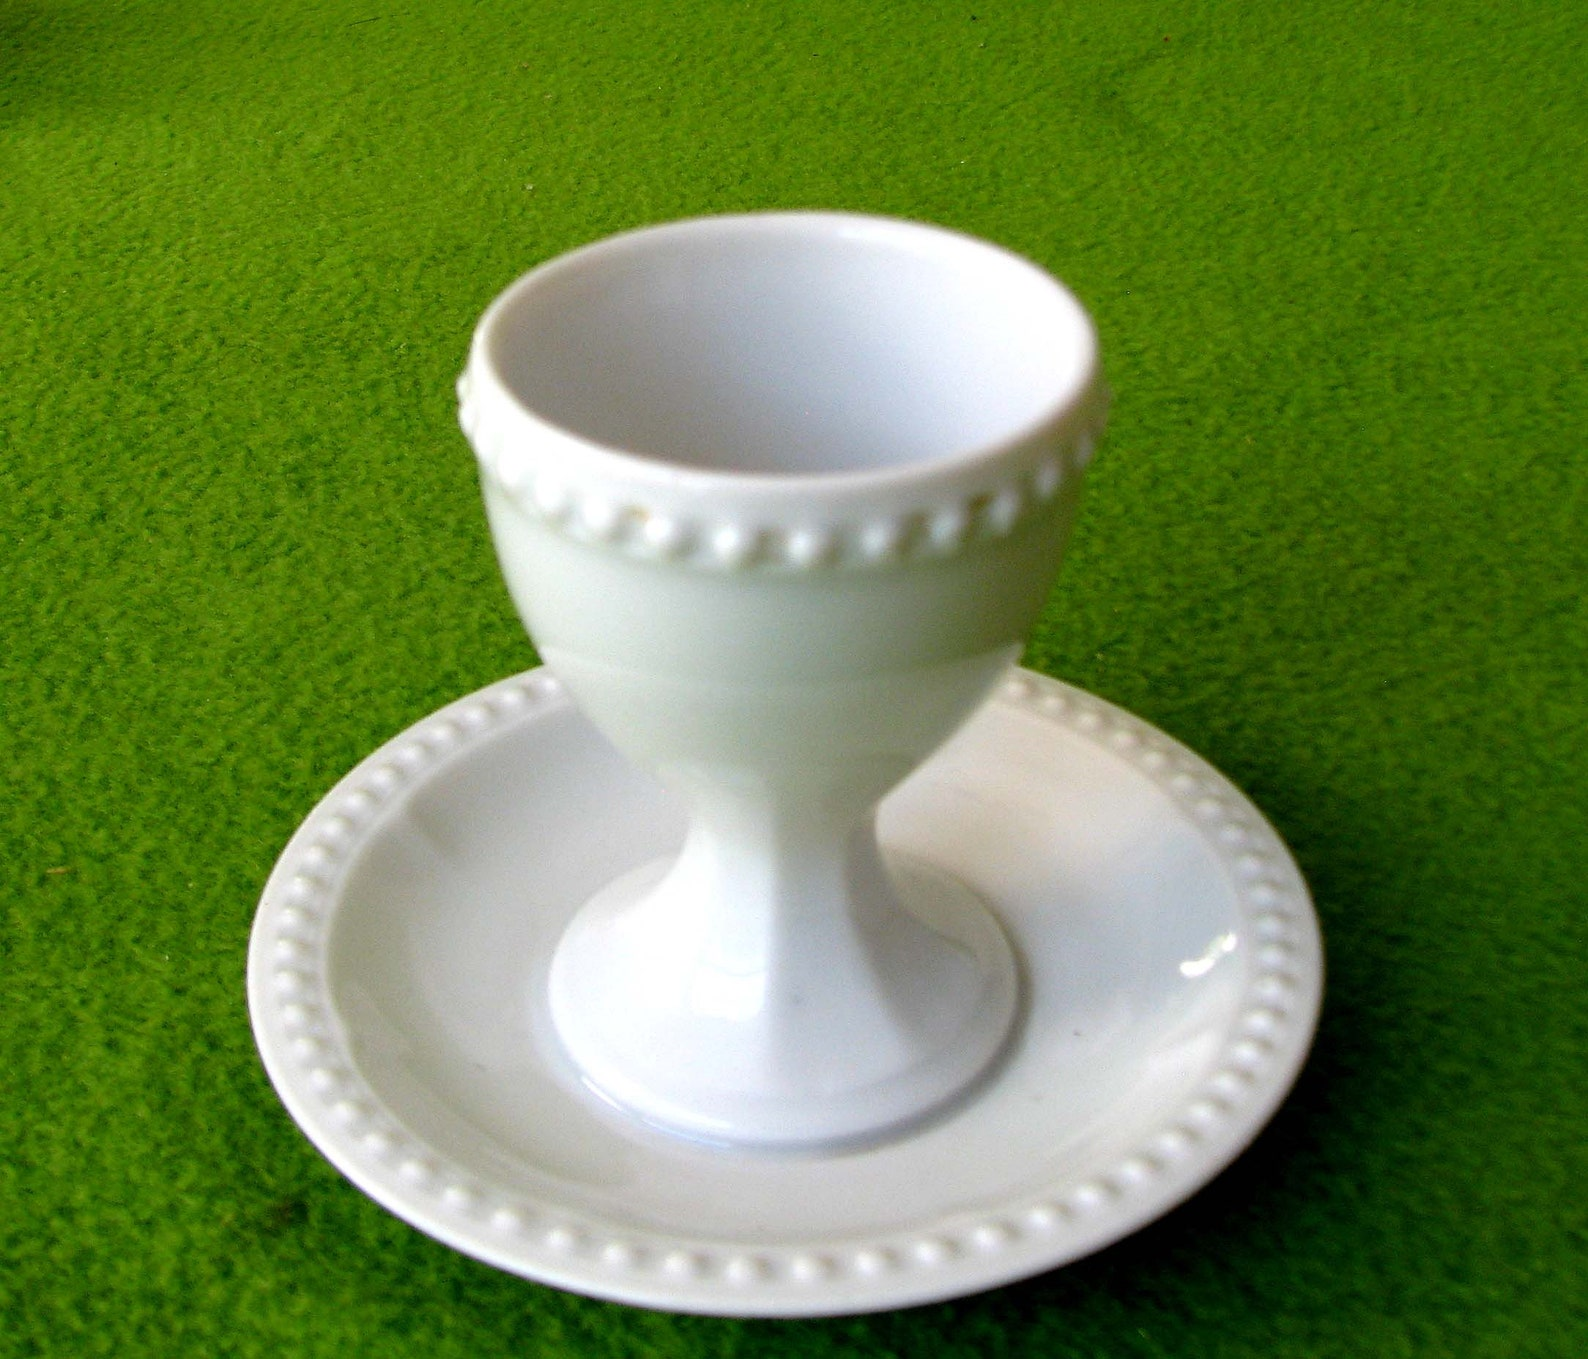 Vintage Egg Cup with Attached Plate, Hutschenreuther Porcelain Co. of Bavaria, Germany in the 1925 to 1939 Time Period